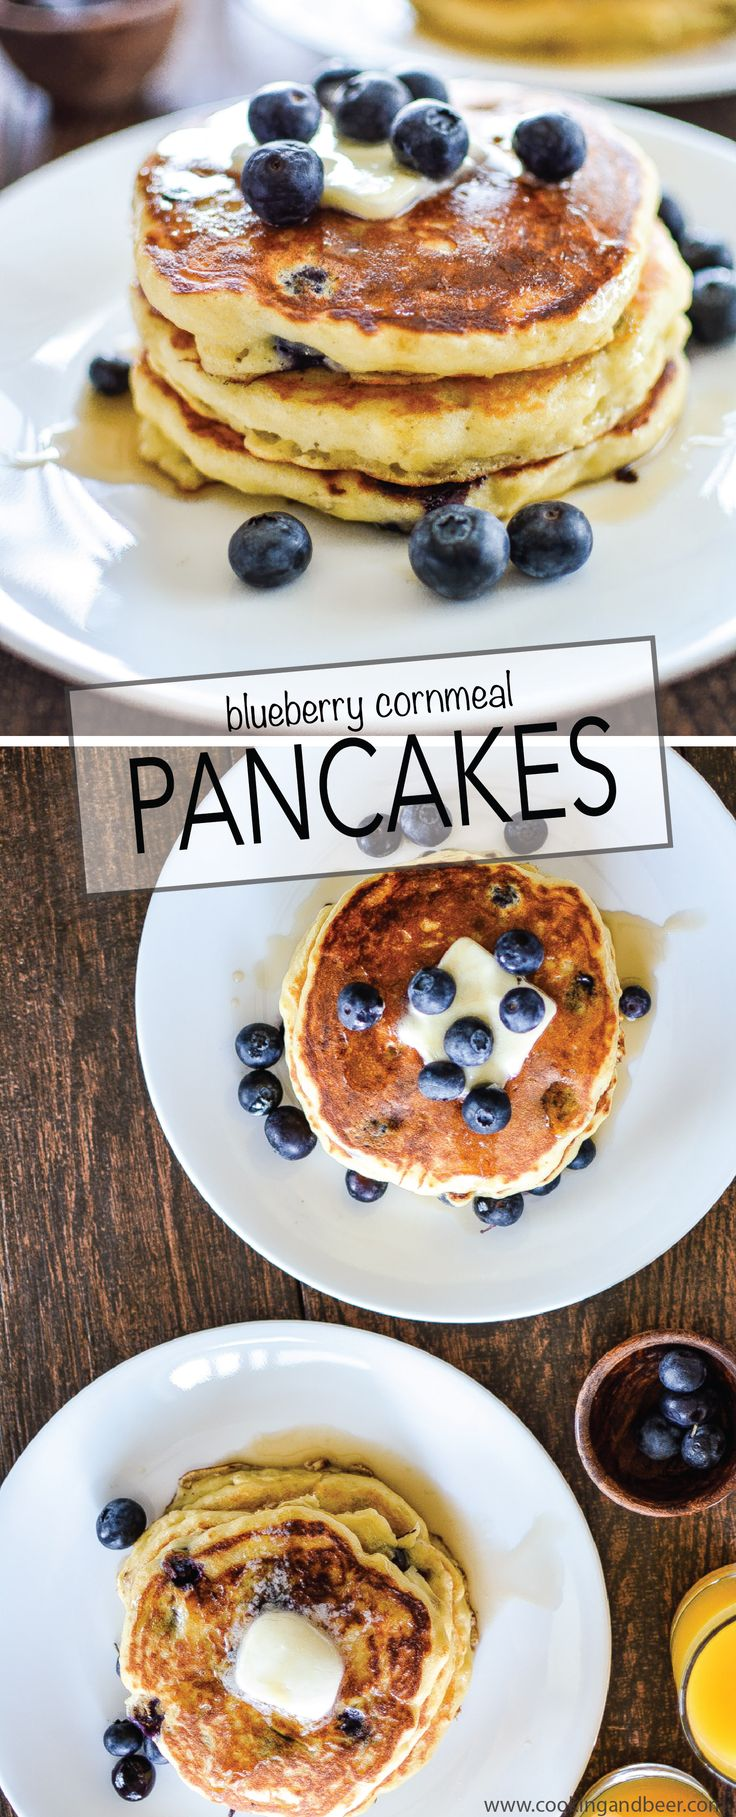 Blueberry Cornmeal Pancakes: a fun spin on a breakfast classic that has a little more texture and a lot more flavor! | www.cookingandbeer.com